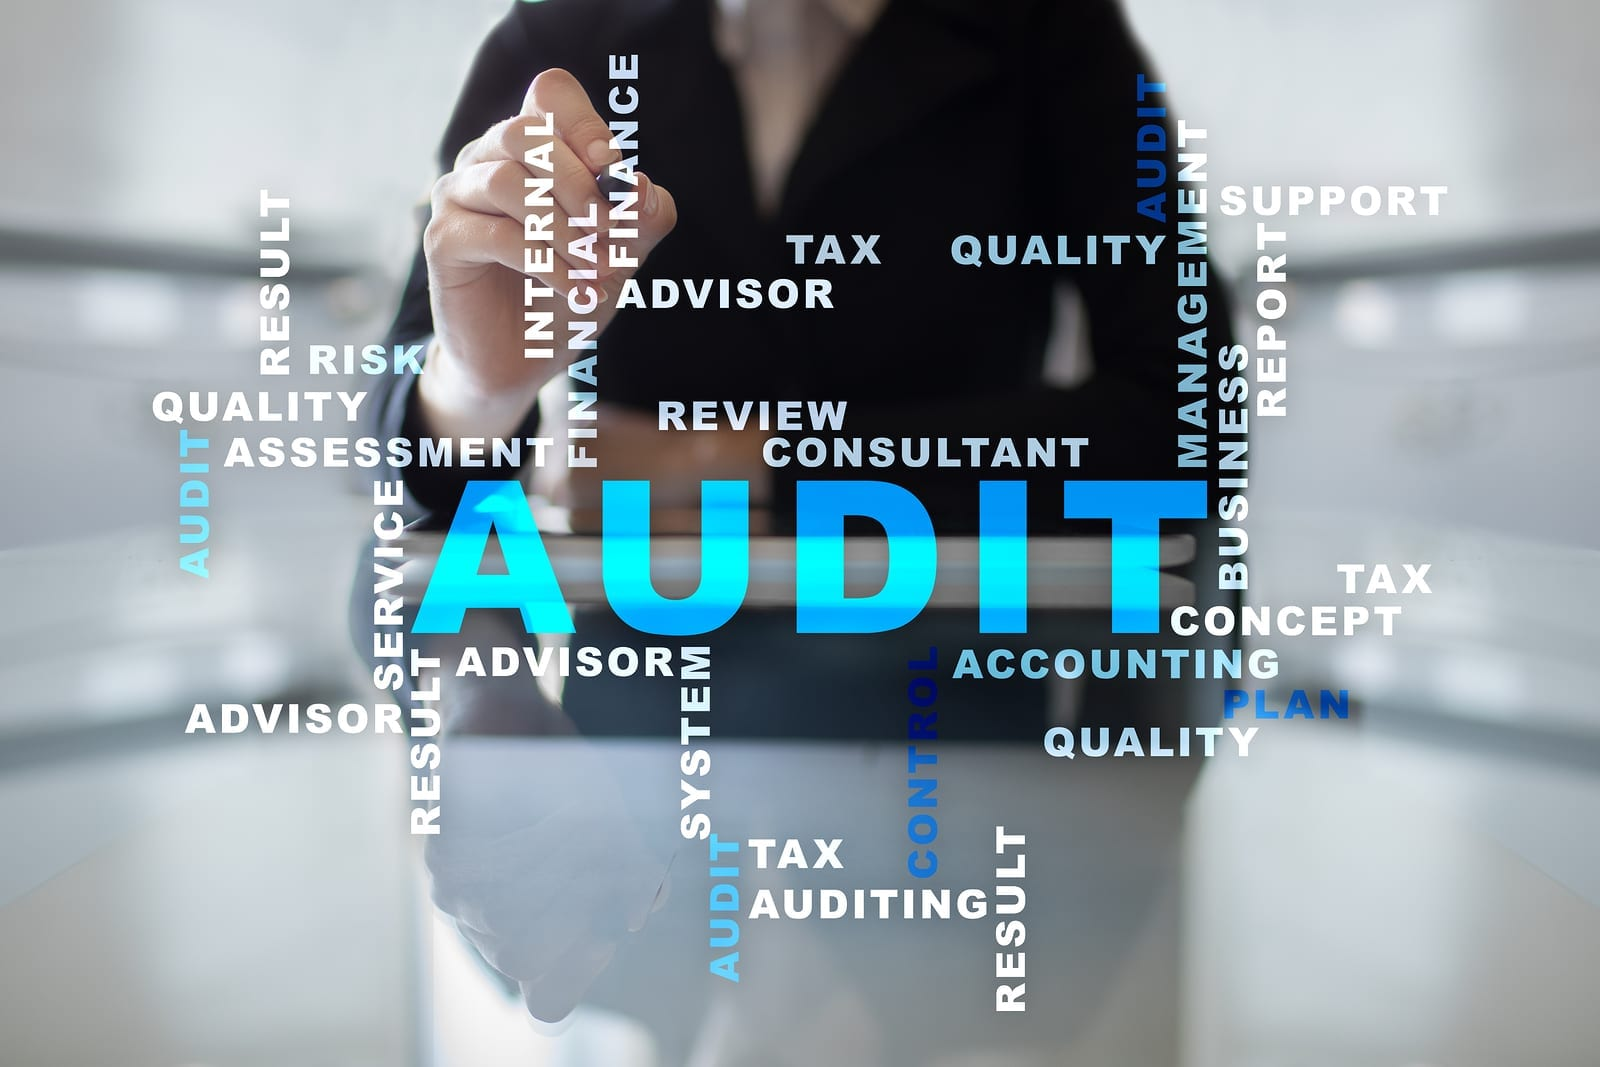 5 Key Benefits of the New Auditing Tool from Microsoft Dynamics 365